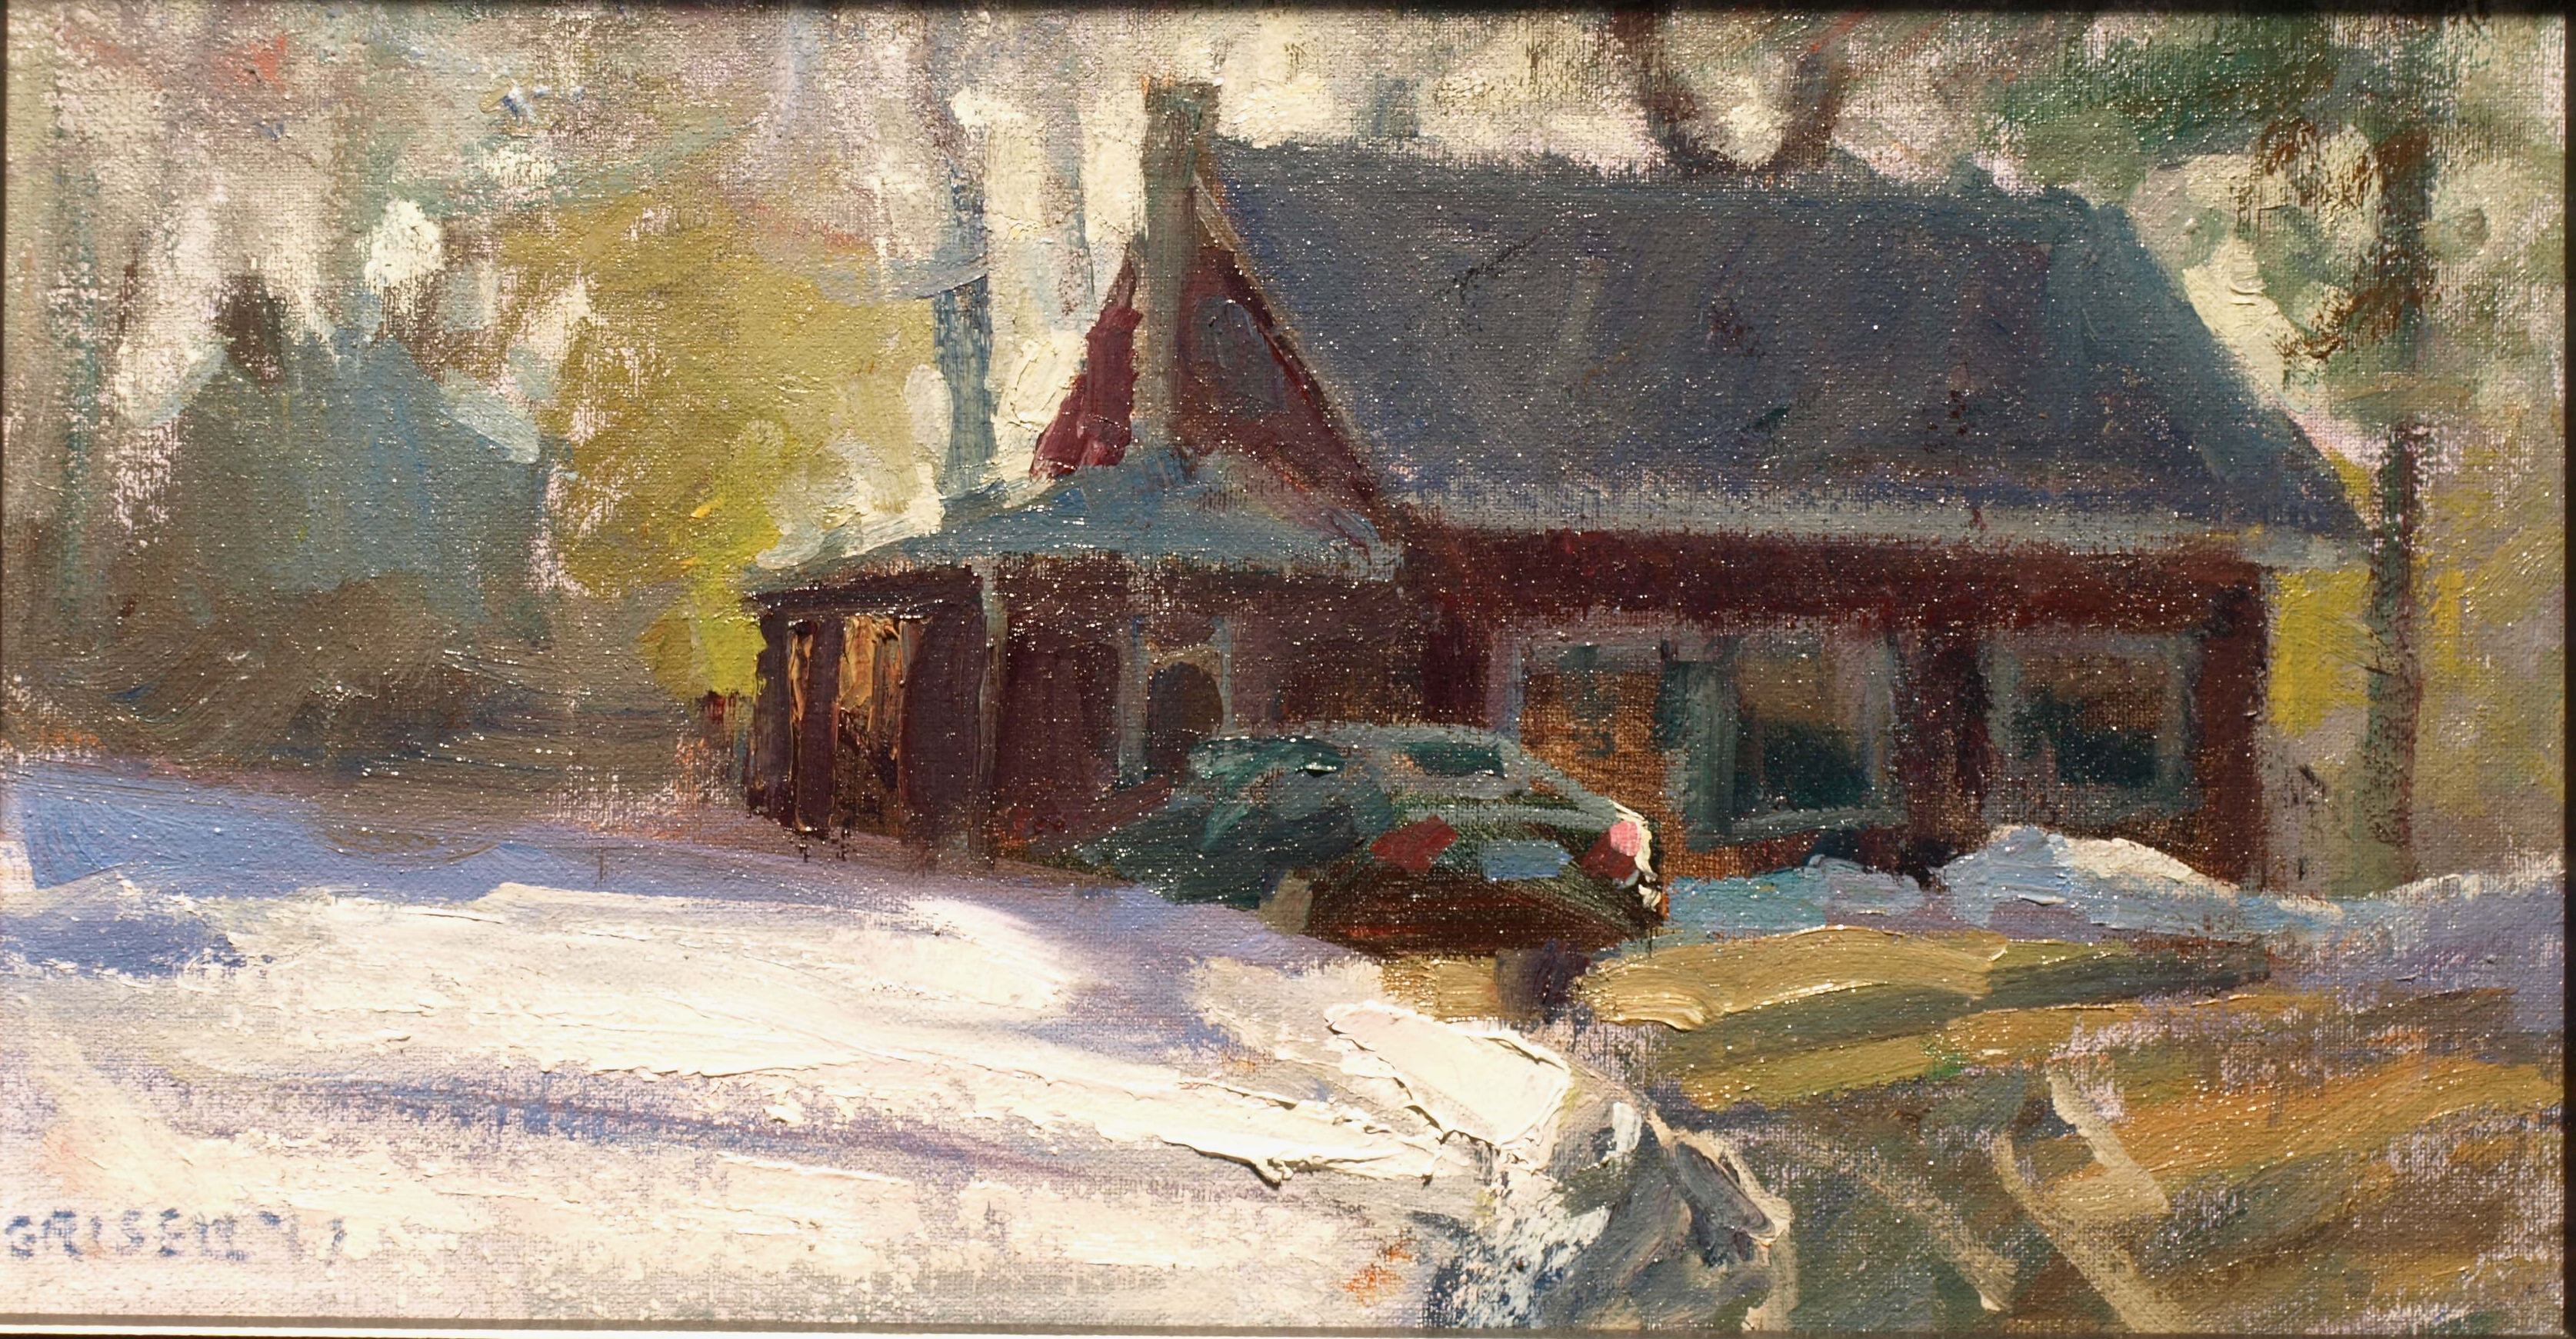 Late Snow, Oil on Canvas on Panel, 9 x 16 Inches, by Susan Grisell, $275